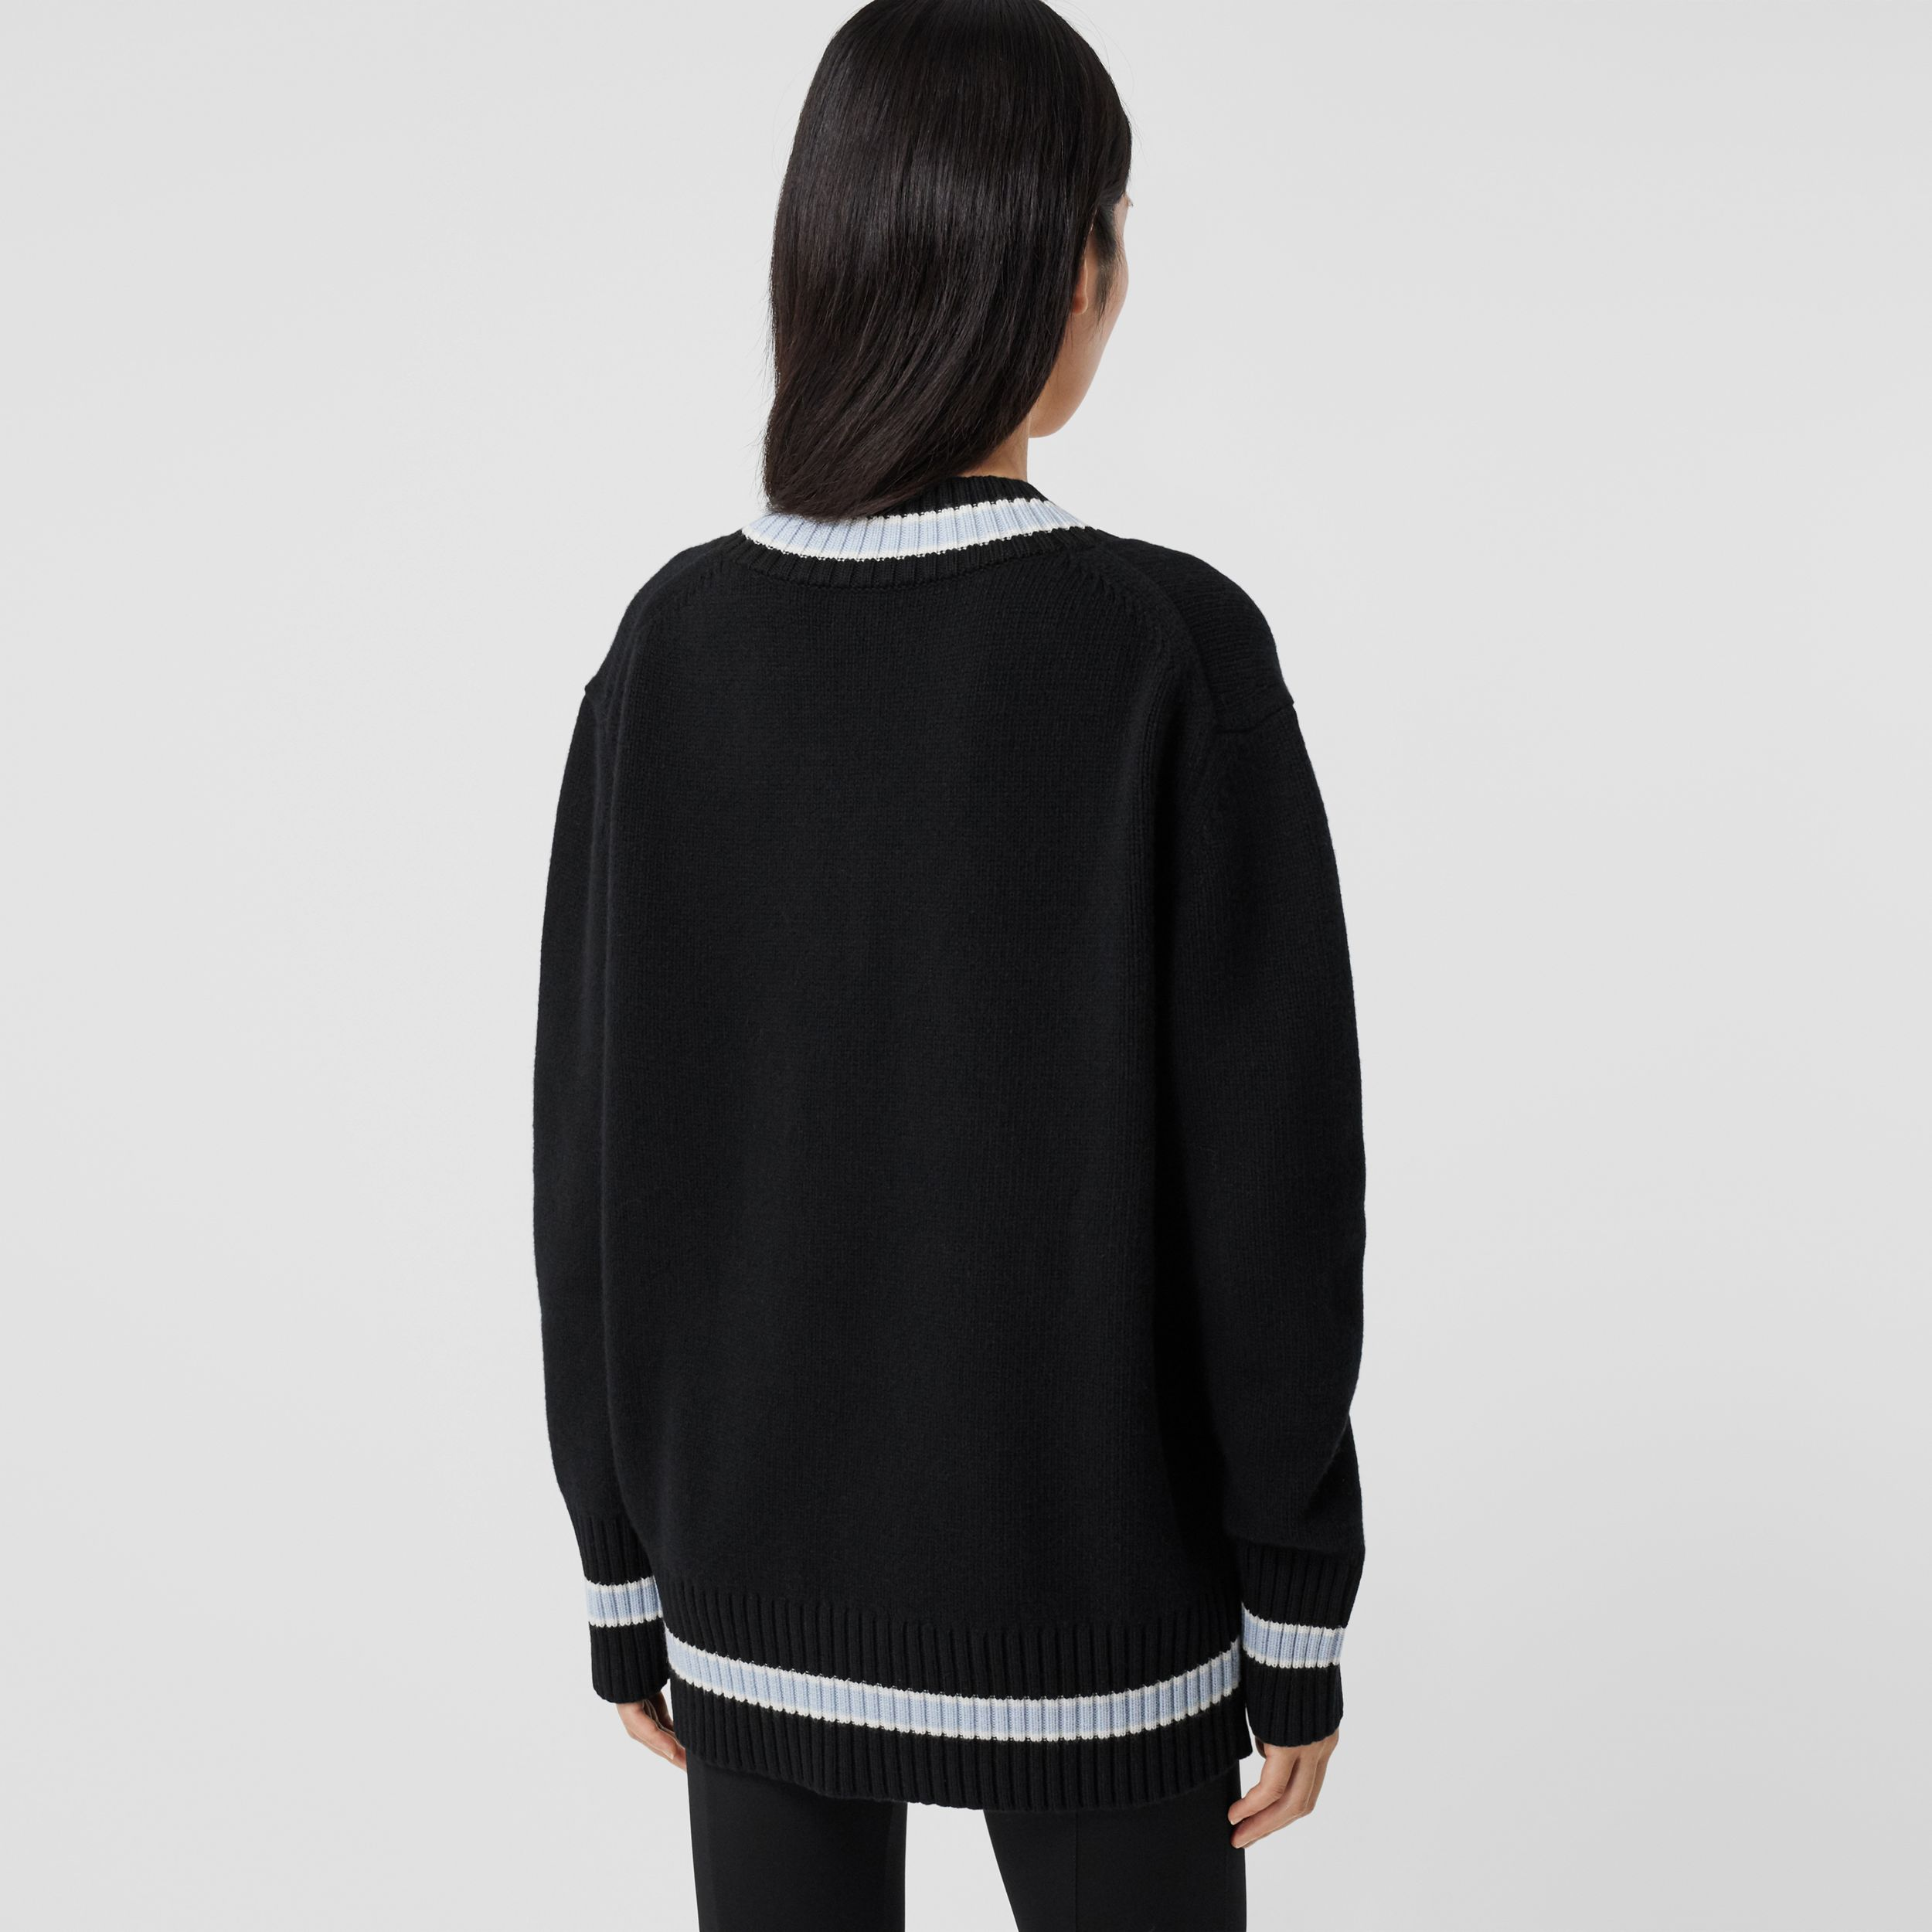 Wool Oversized Cricket Sweater in Black - Women | Burberry - 3